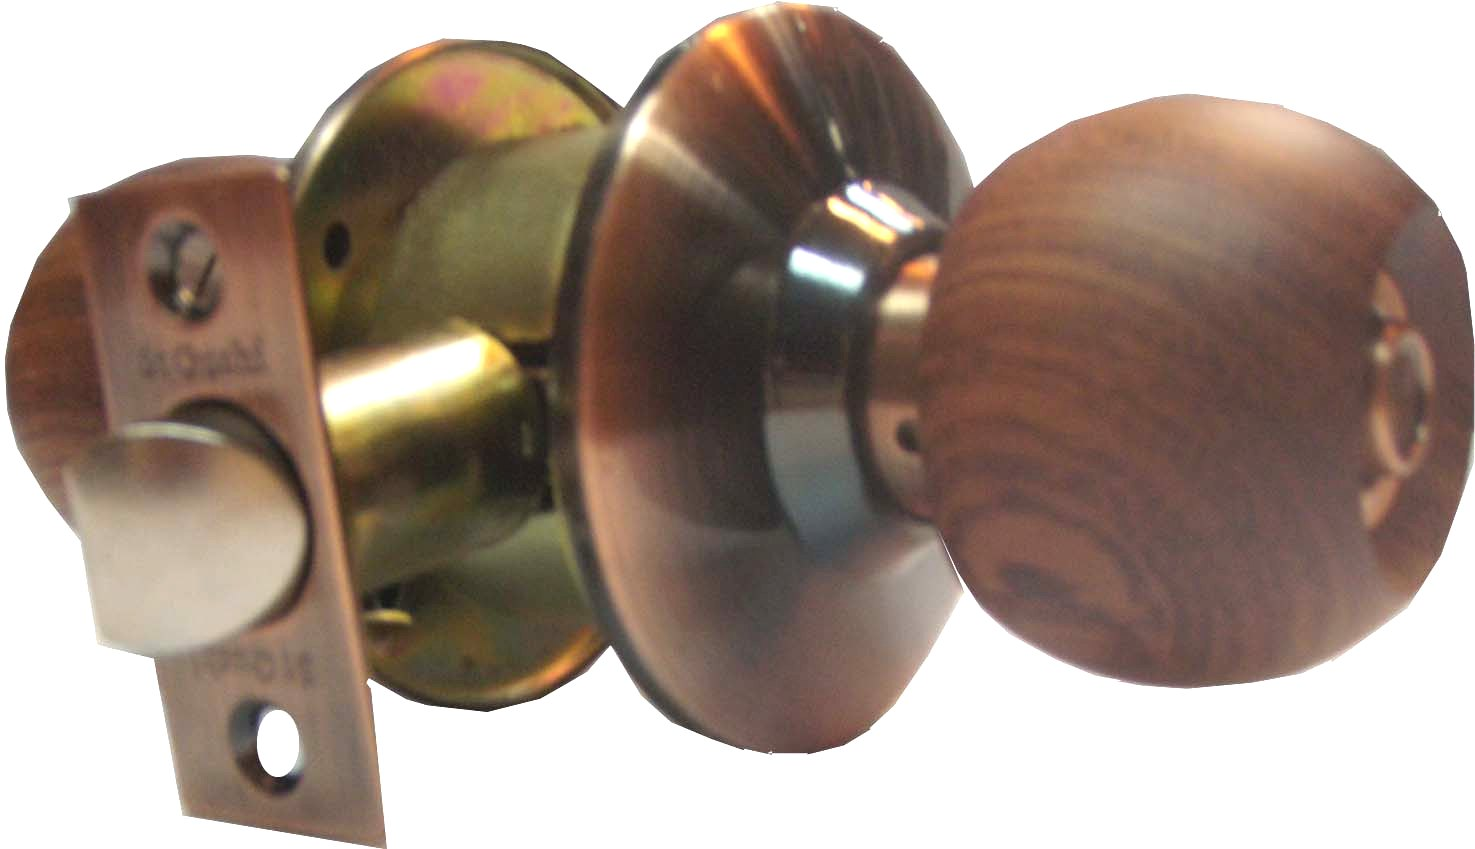 C3110 ST GUCHI WOODEN KNOB PRIVACY CYLINDRICAL LOCK